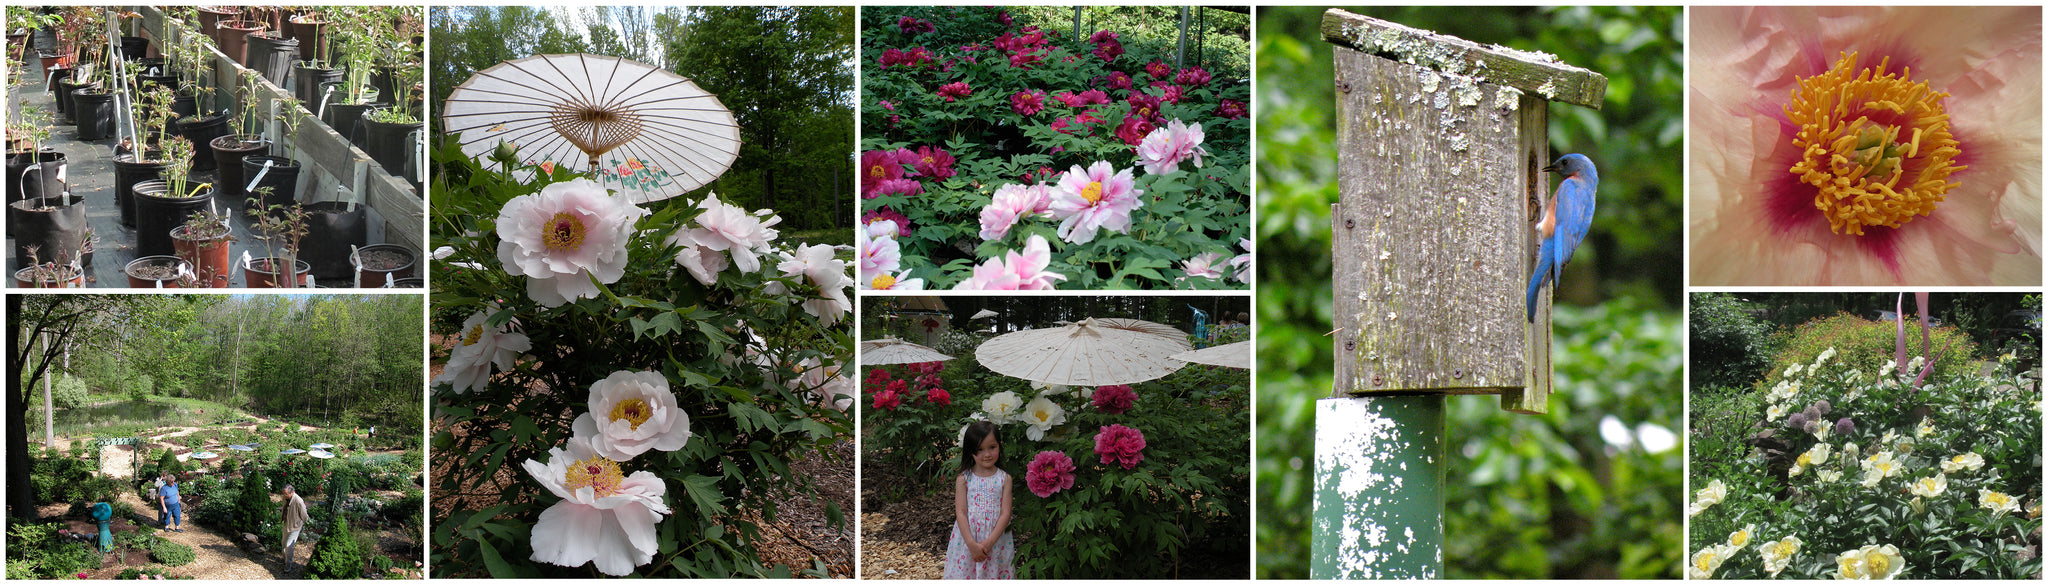 Charmant We Invite Peony Lovers From Near And Far To Enjoy Peony Heaven In Bloom.  Some Of The Tree Peonies In Our Display Garden Are Reaching An Impressive  Size And ...